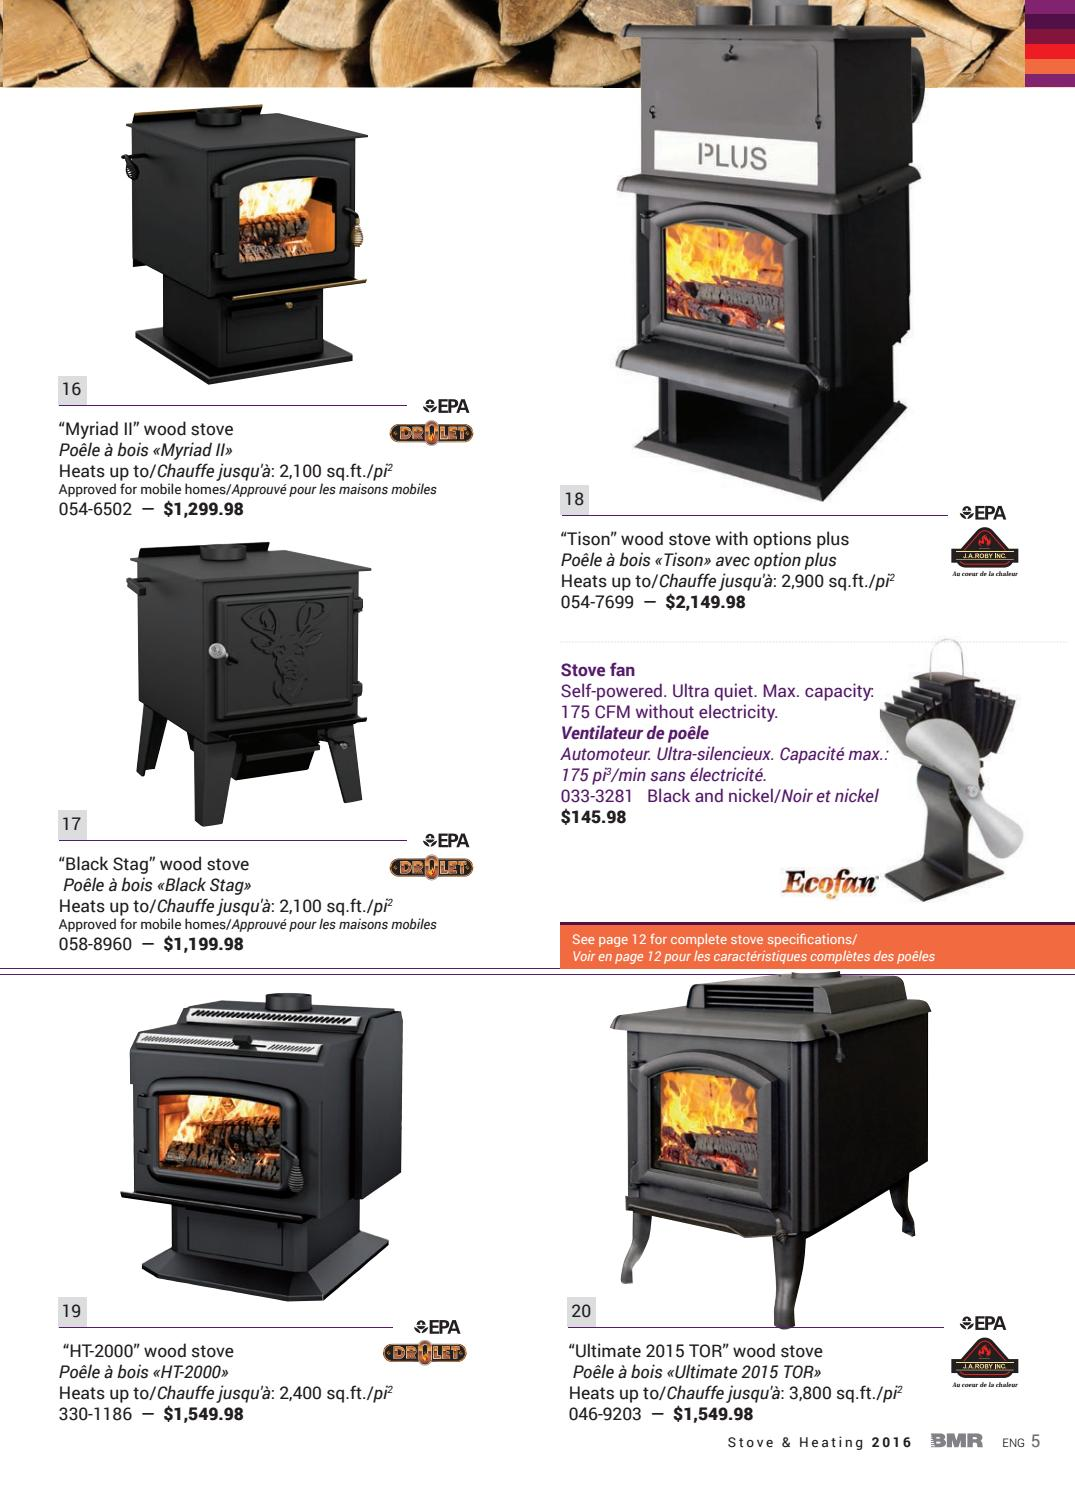 BMR | Stove & Heating by Groupe BMR - issuu